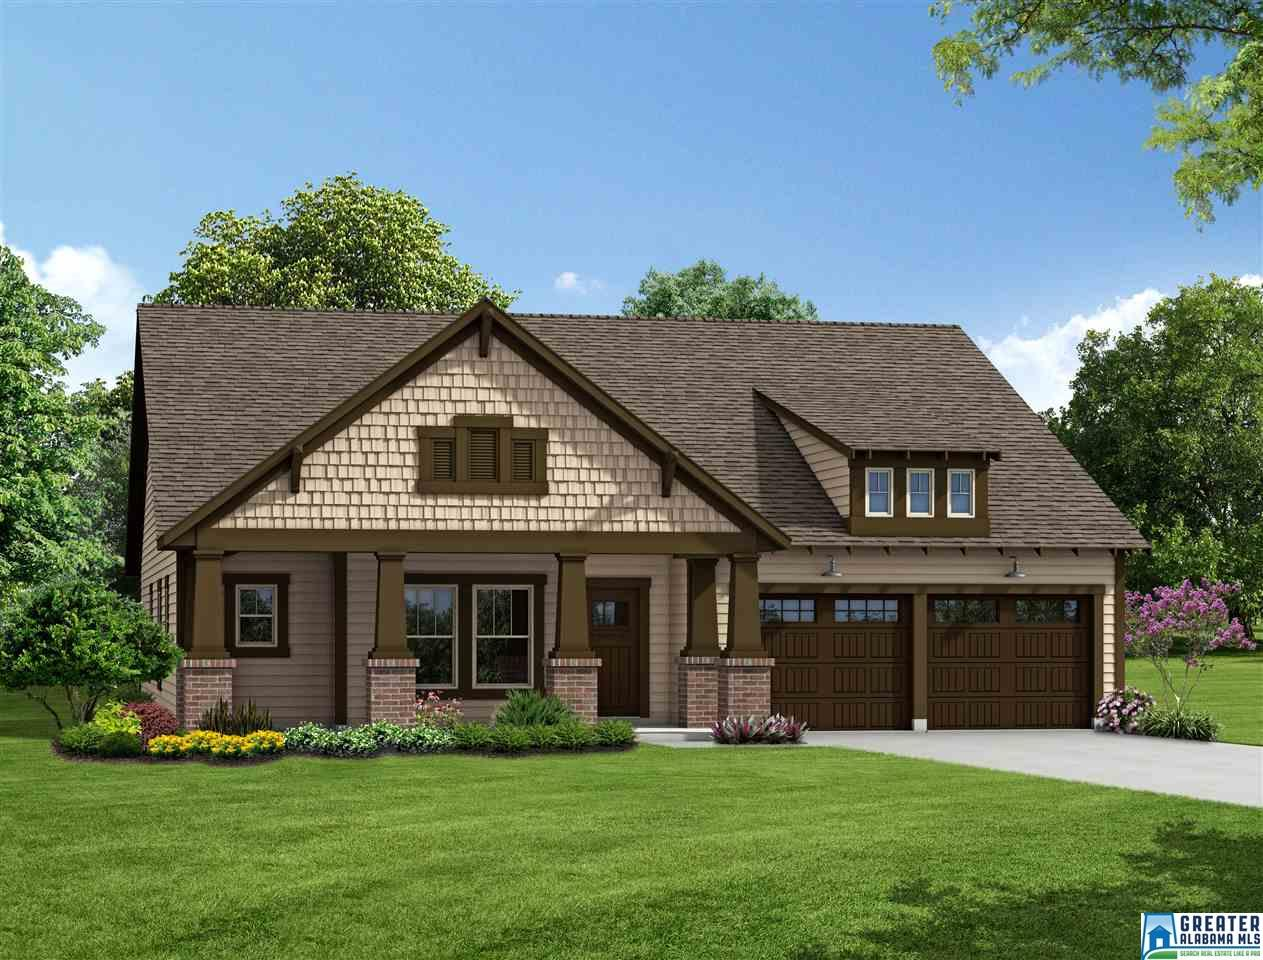 Grants Mill Valley - New homes coming to Irondale 795199